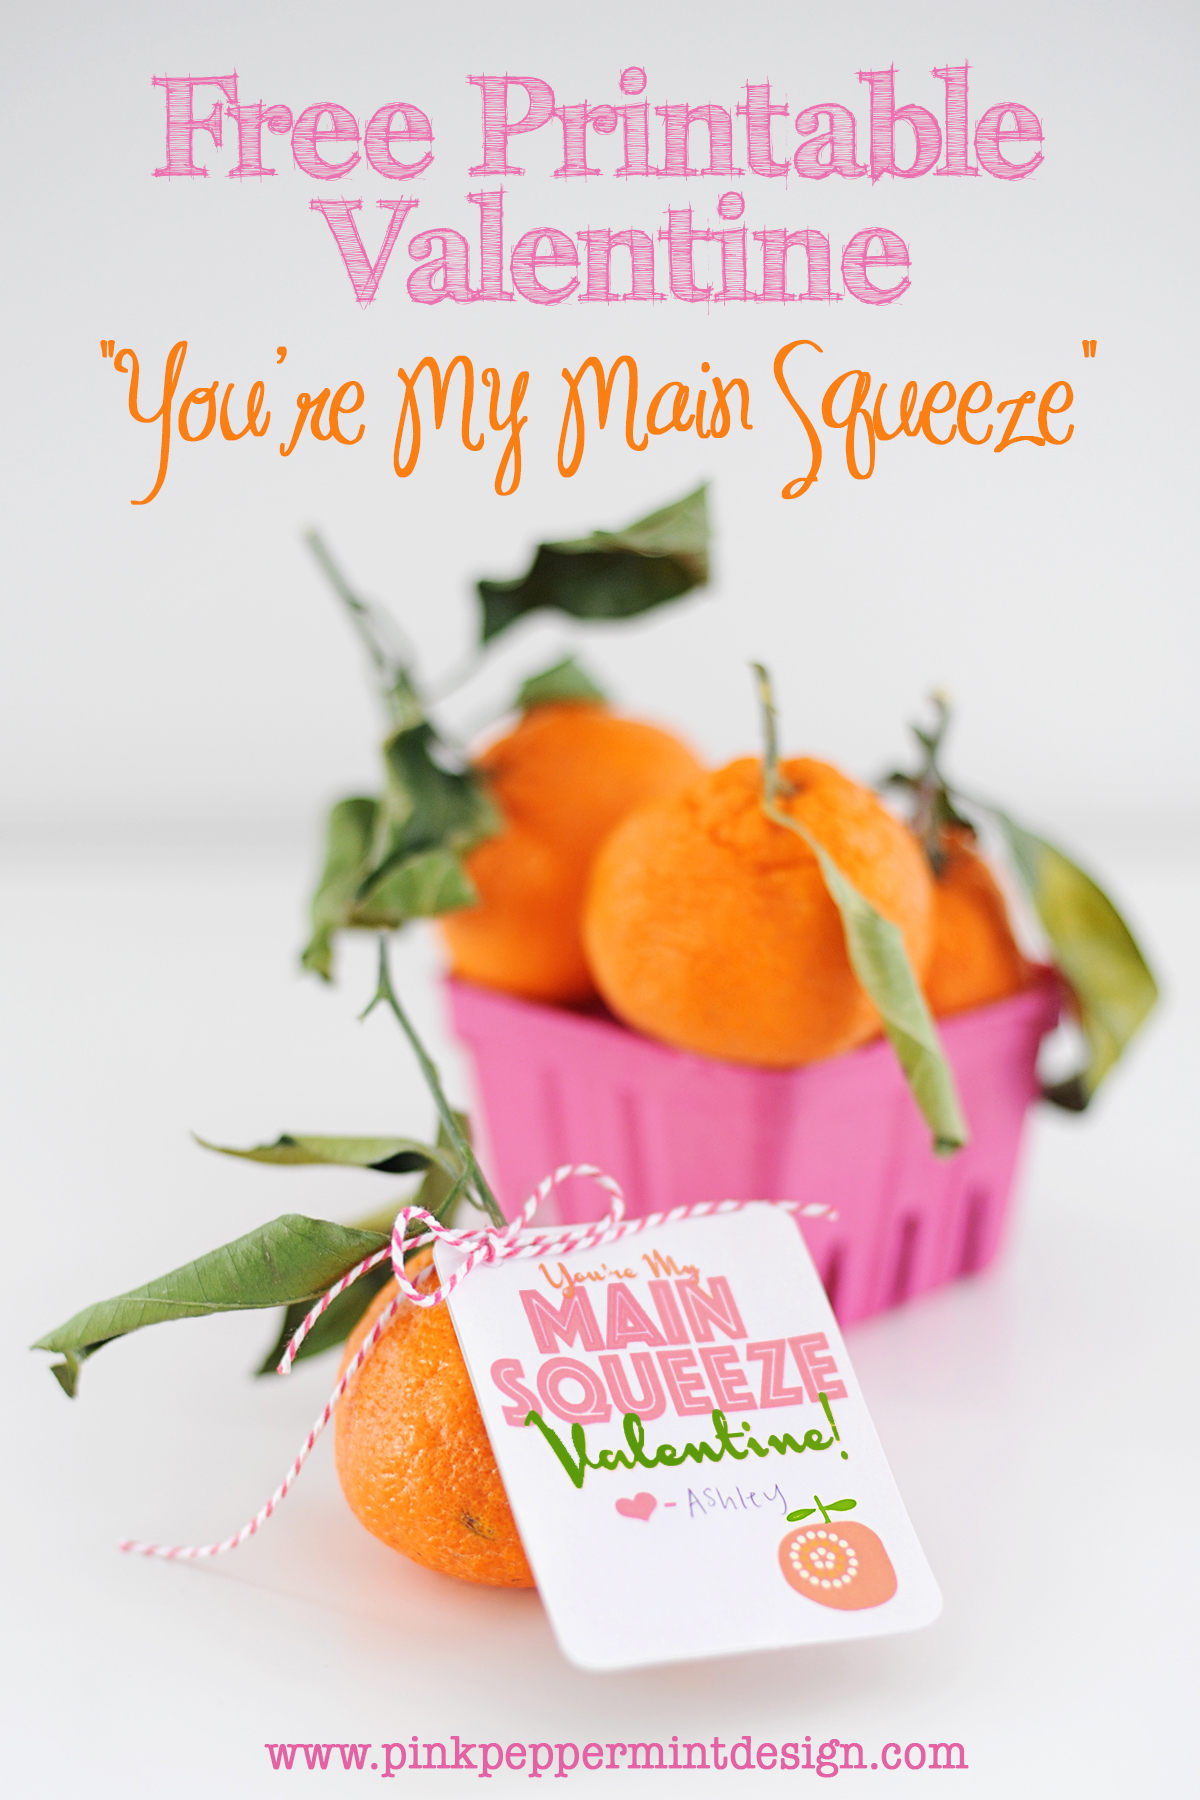 """You're My Main Squeeze"" DIY Handmade Free Printable Valentine by Tammy Mitchell"